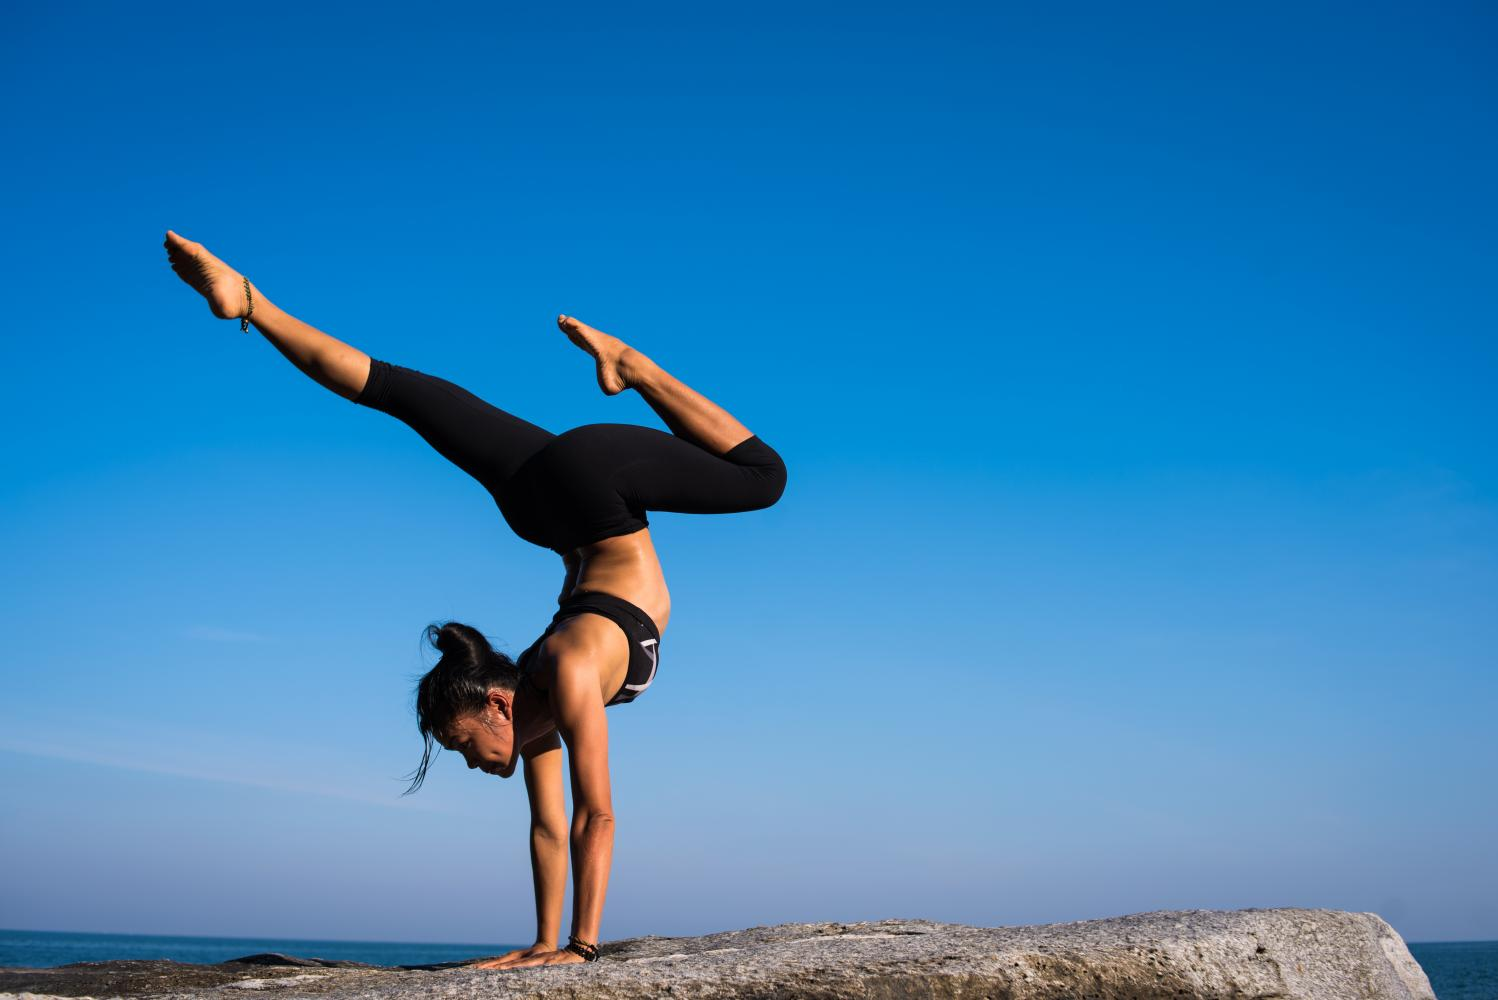 Some benefits of yoga include increased flexibility and muscle tone.